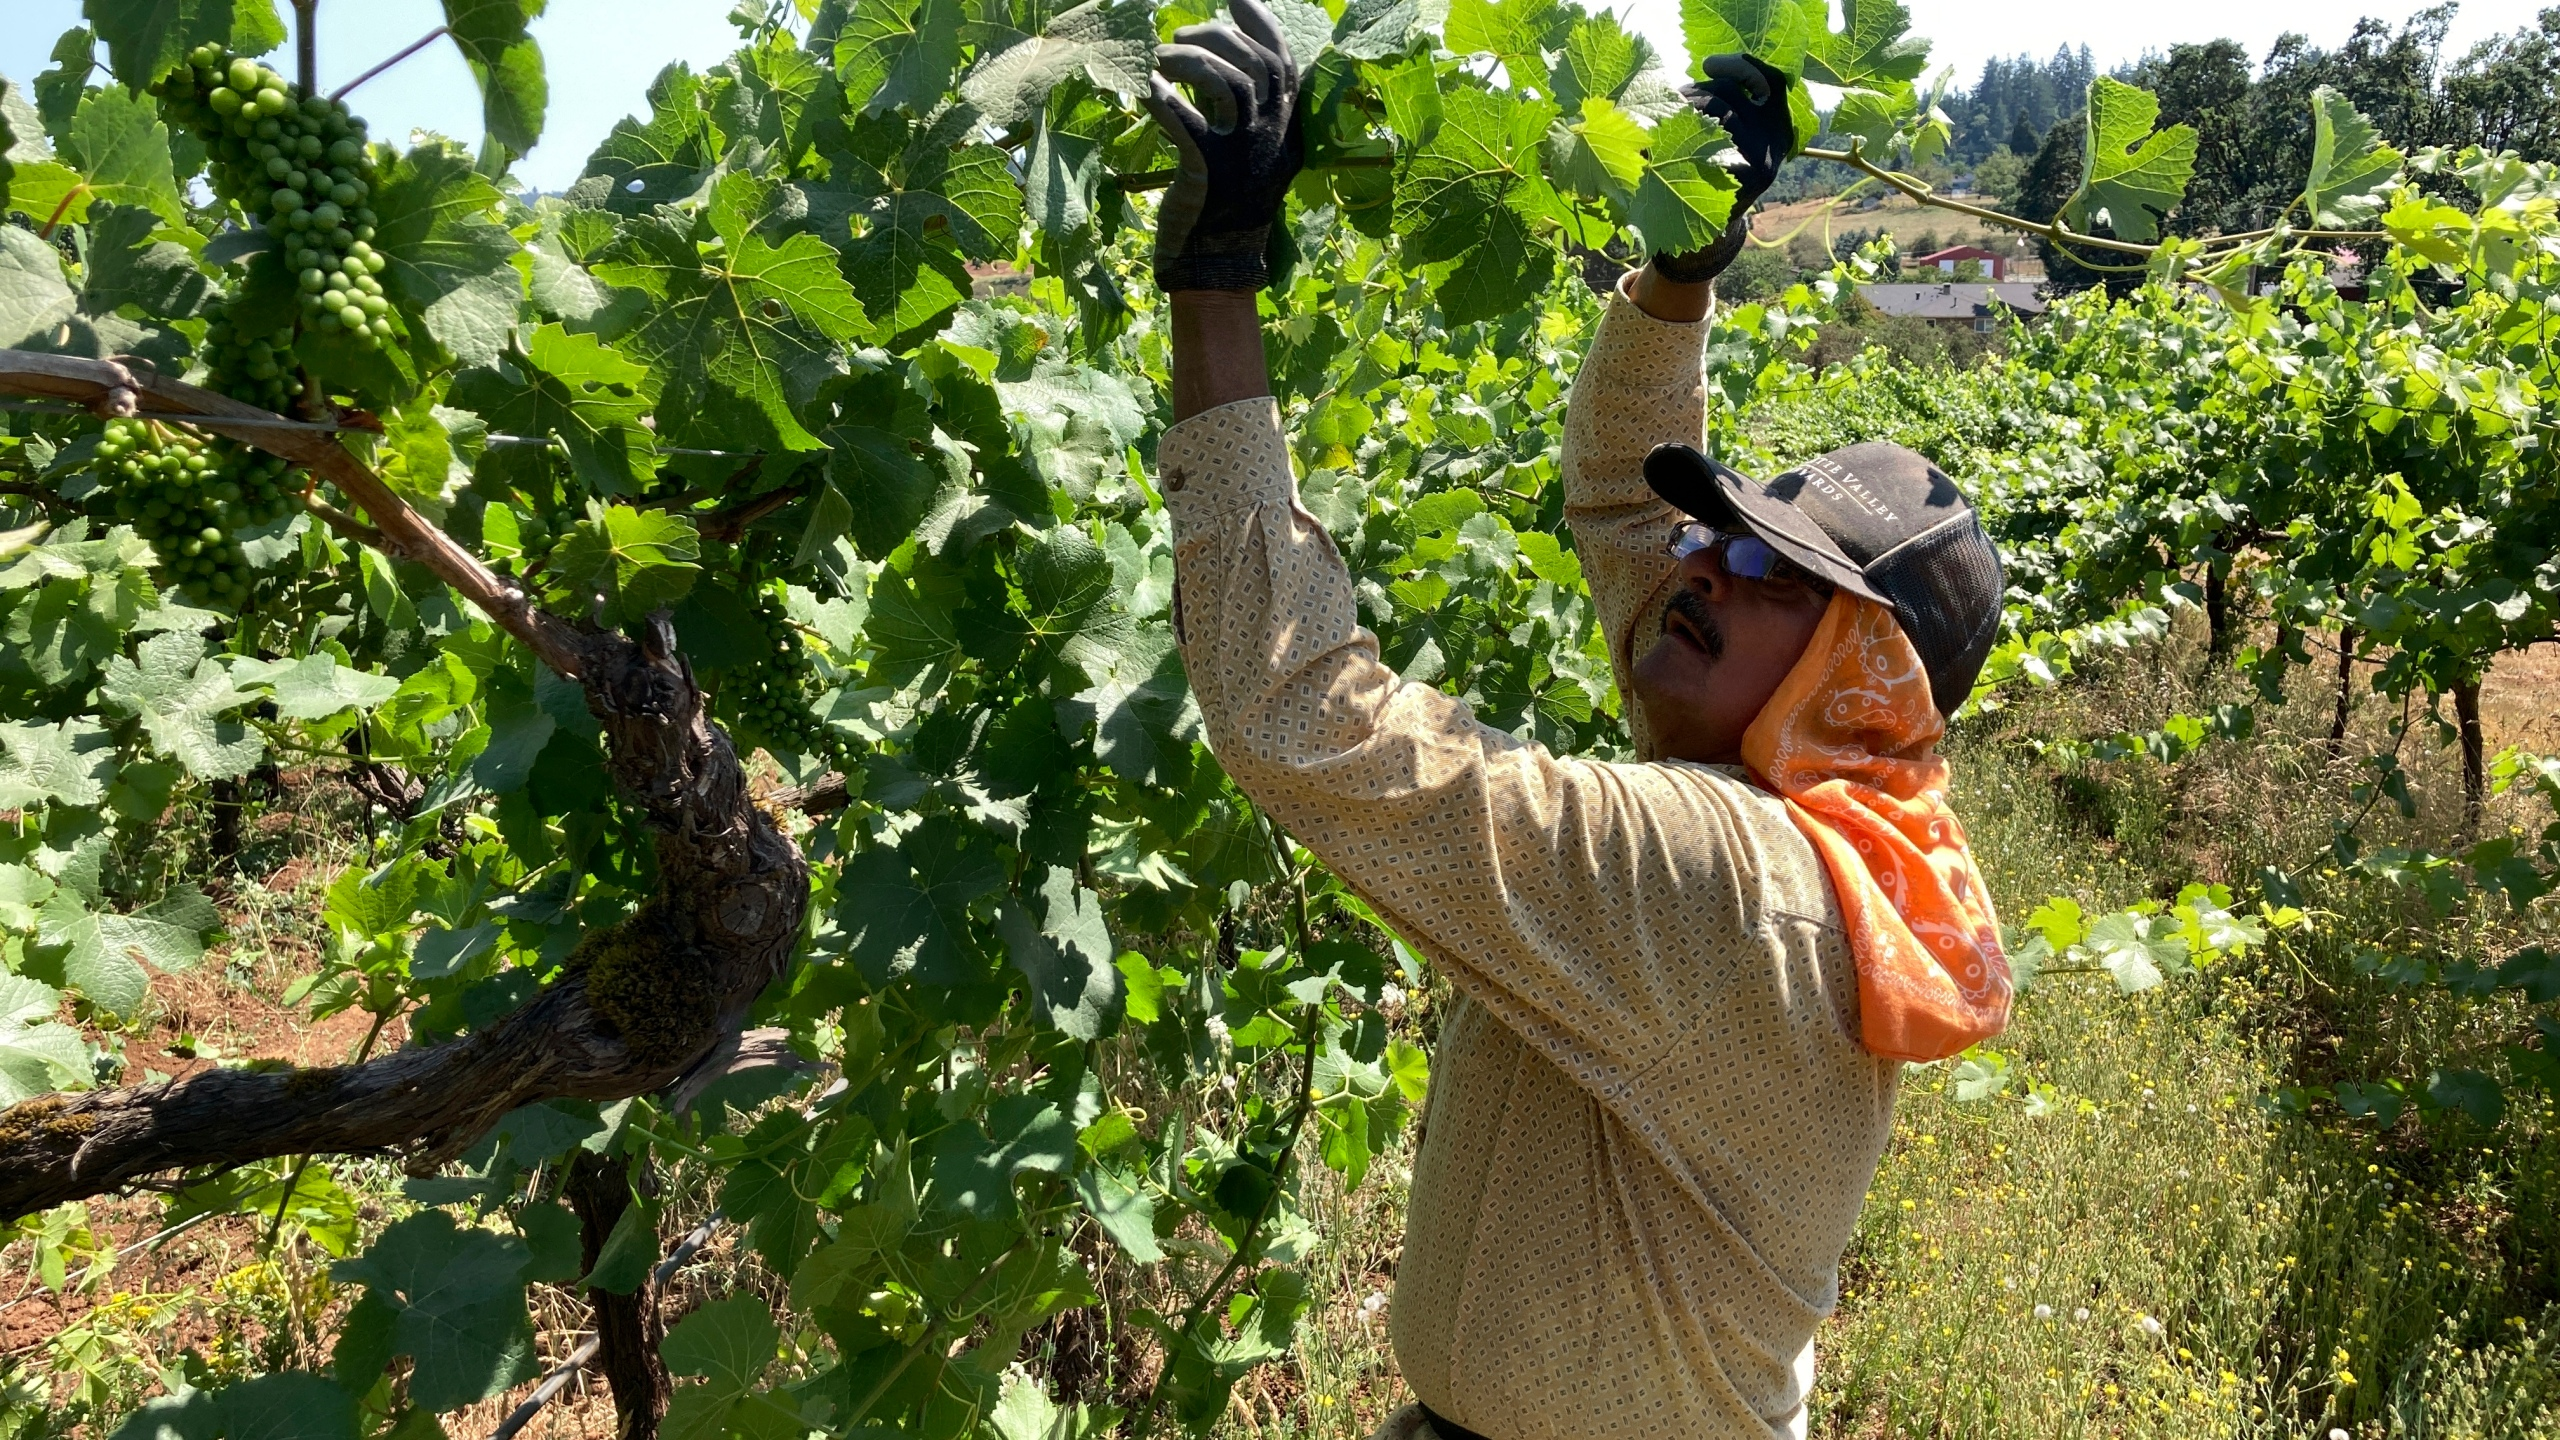 Miguel Ramos, of Salem, Oregon, reaches up to pull the leaf canopy over pinot noir grapes on Thursday, July 8, 2021, to shade the fruit from the sun, at Willamette Valley Vineyards in Turner, Ore. (AP Photo/Andrew Selsky)